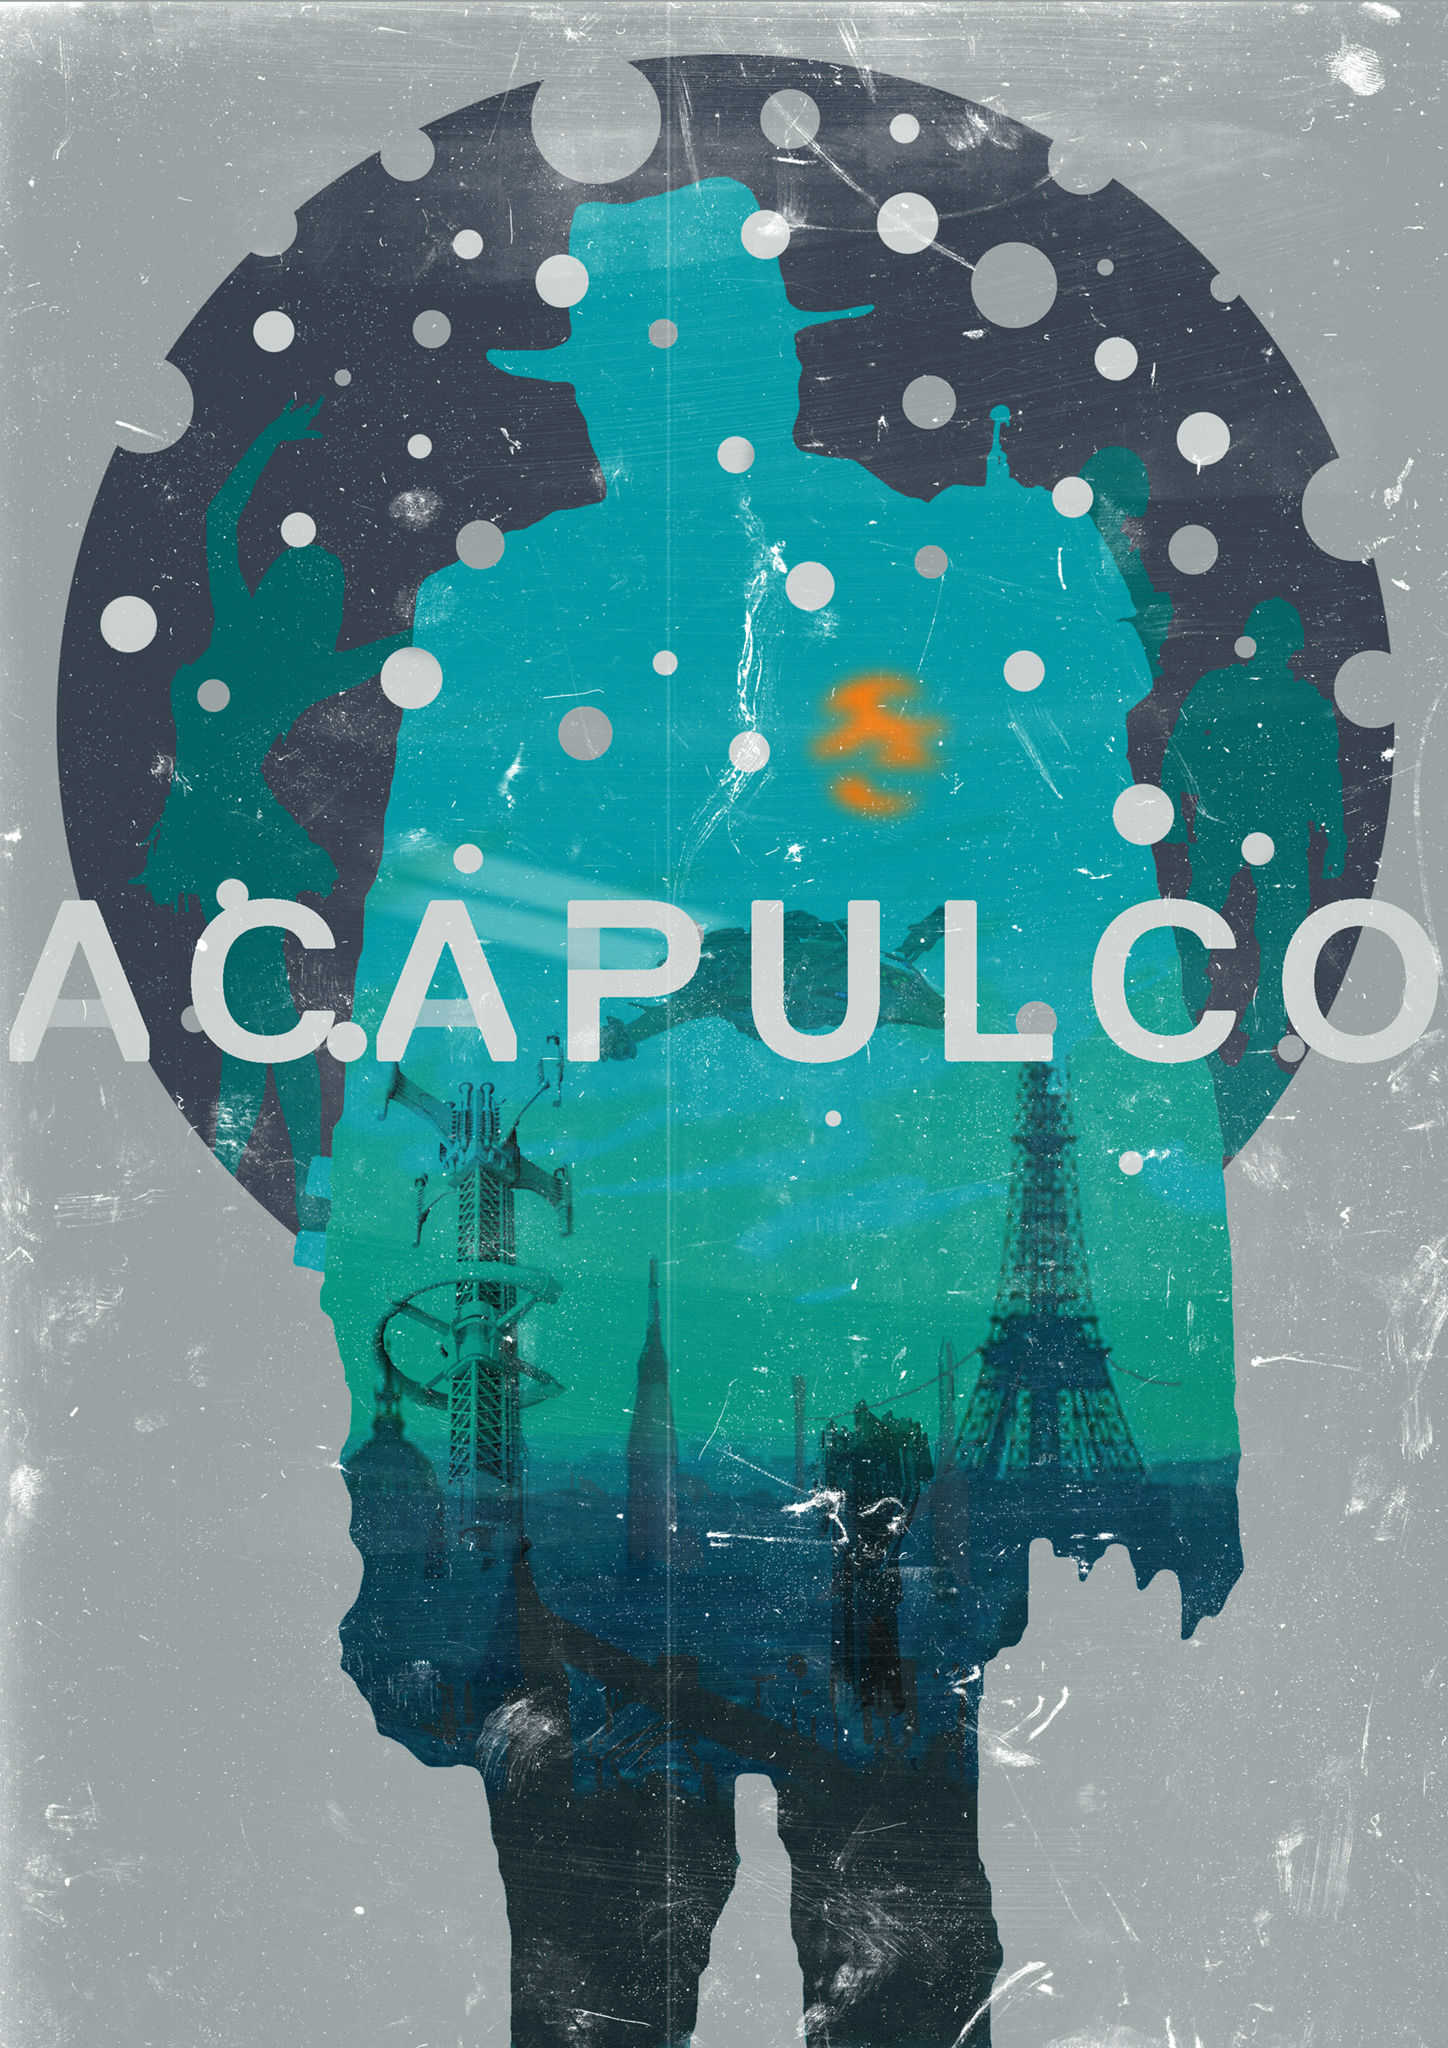 Kleon Medugorac Acapulco 2013 Poster / DVD Cover for a science fiction movie project.